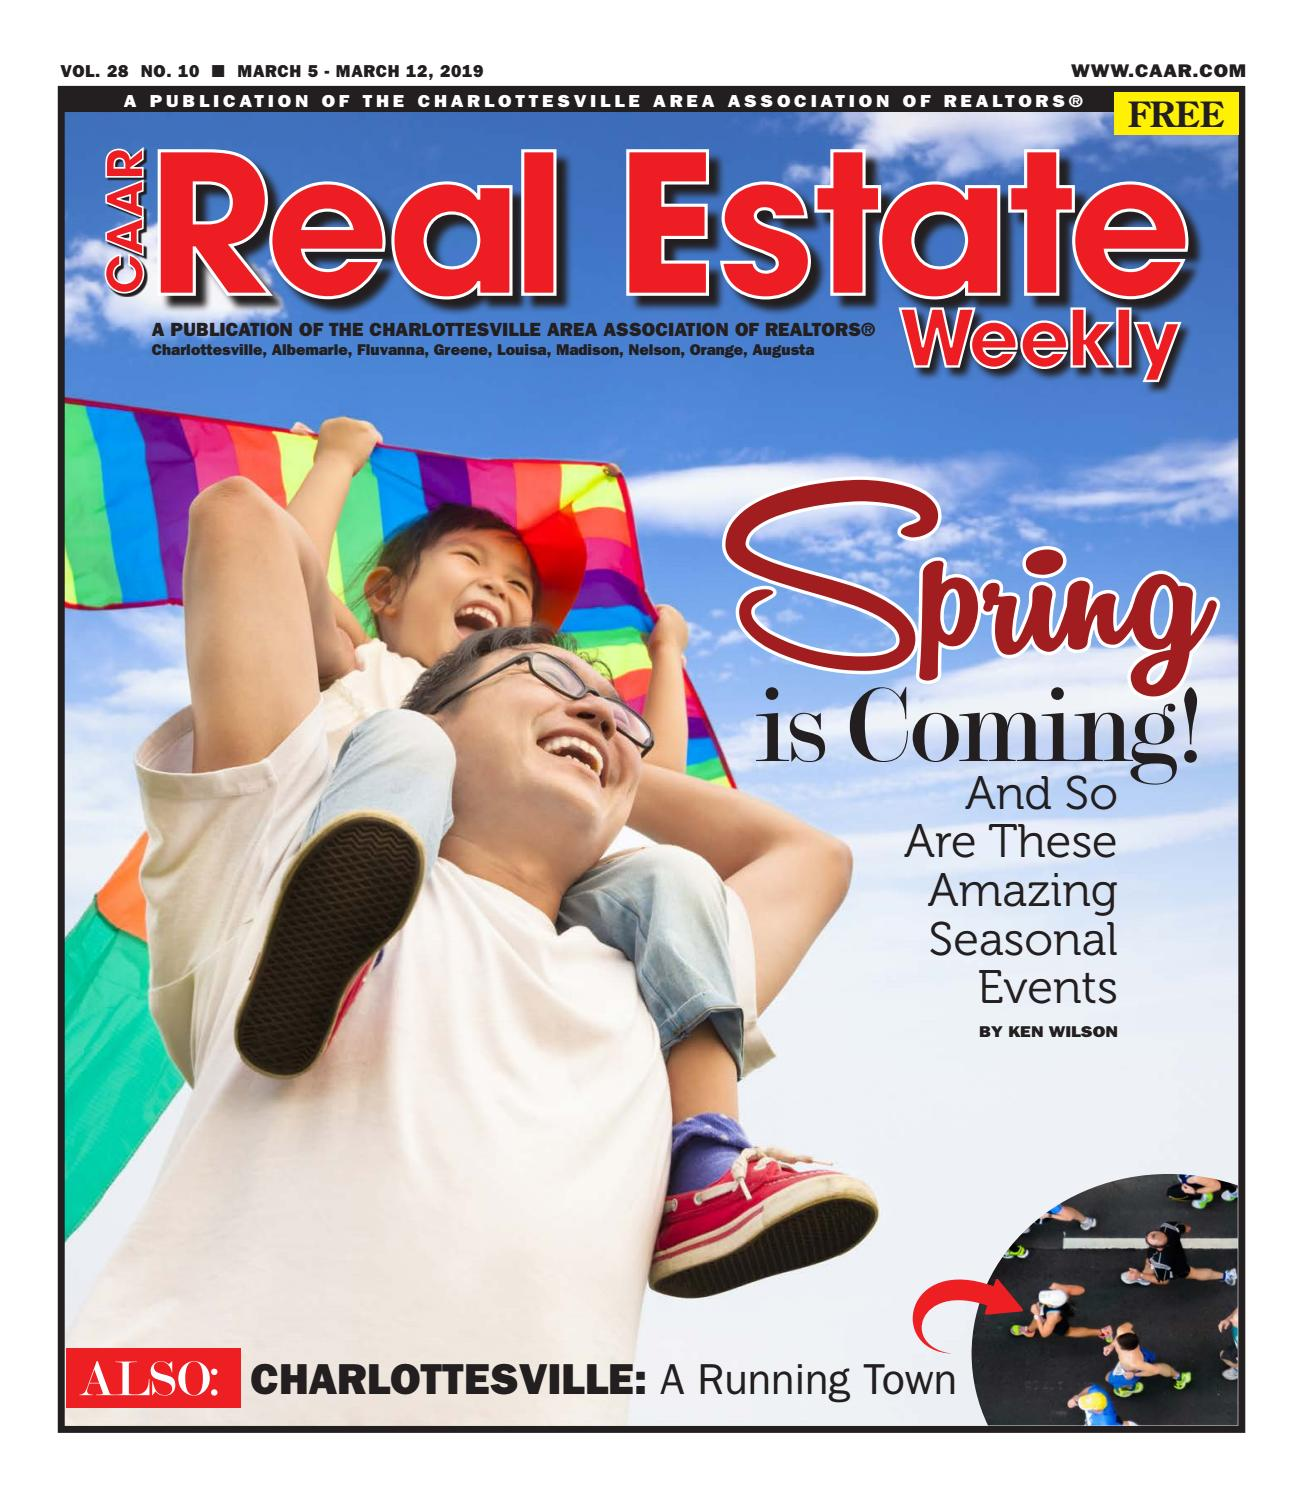 39ed10e94f5 The Real Estate Weekly 3.6.2019 by The Real Estate Weekly - issuu